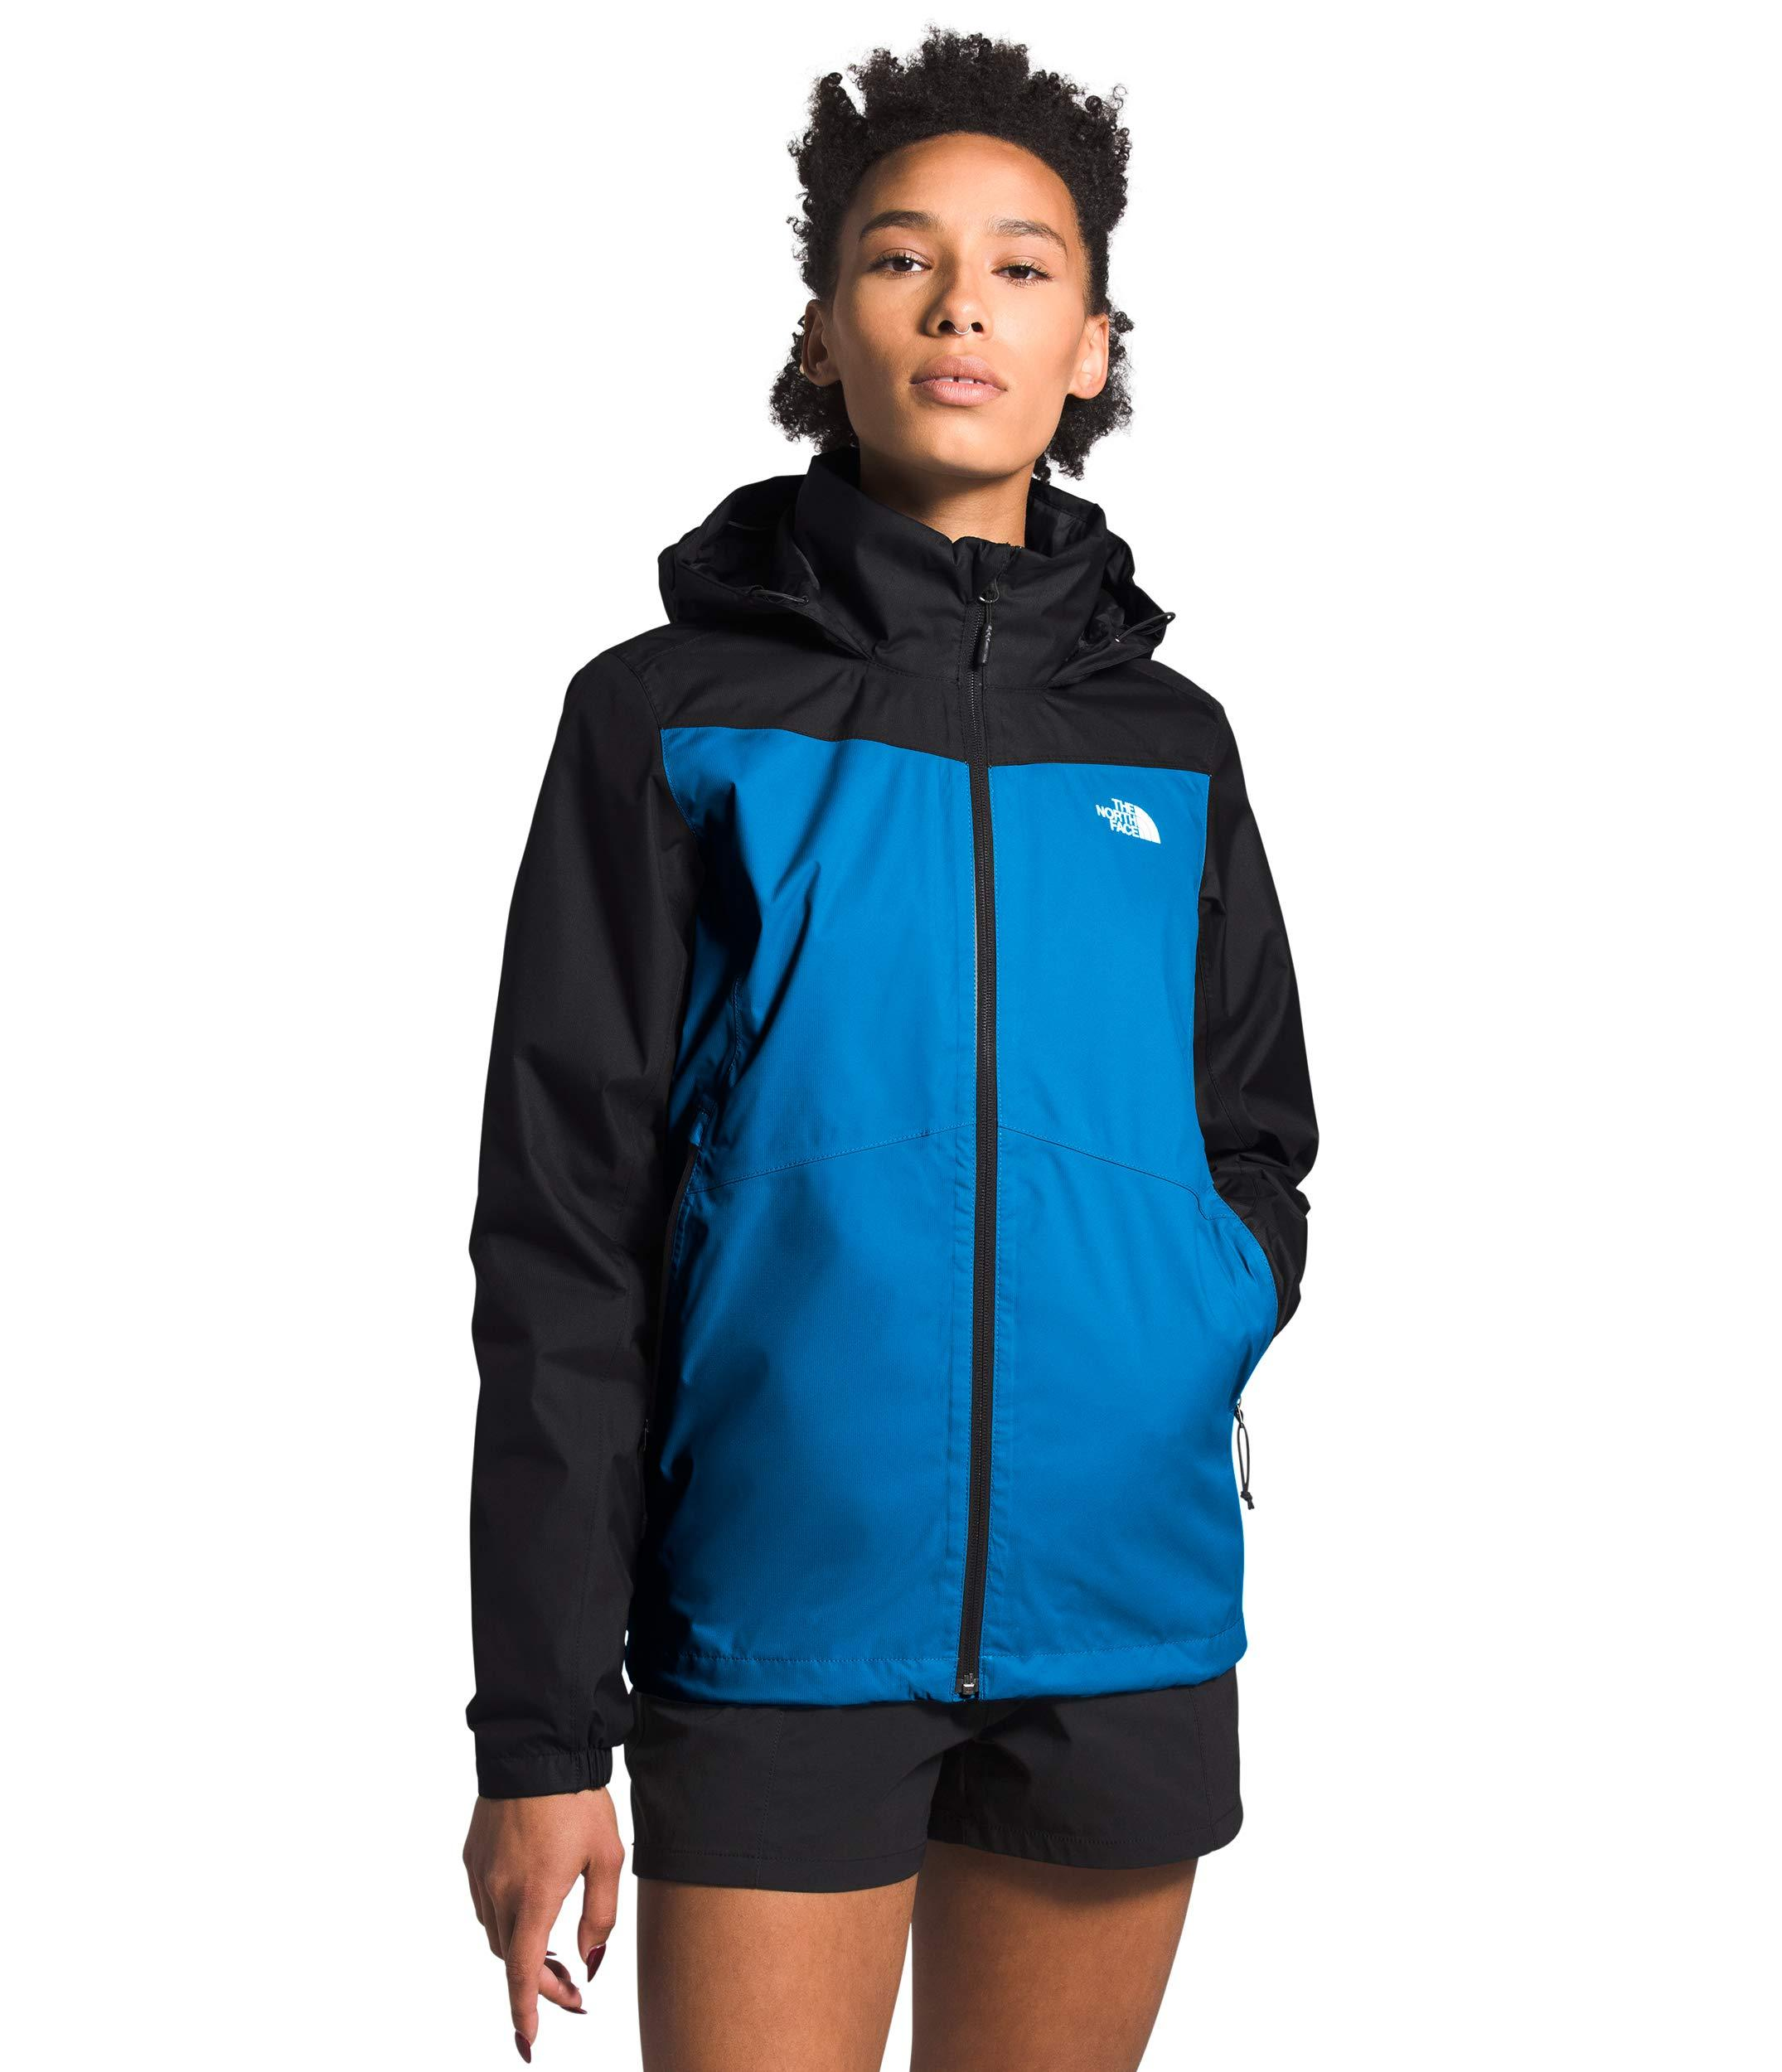 Women's The North Face Resolve Plus Jacket  in Clear Lake Blue/TNF Black